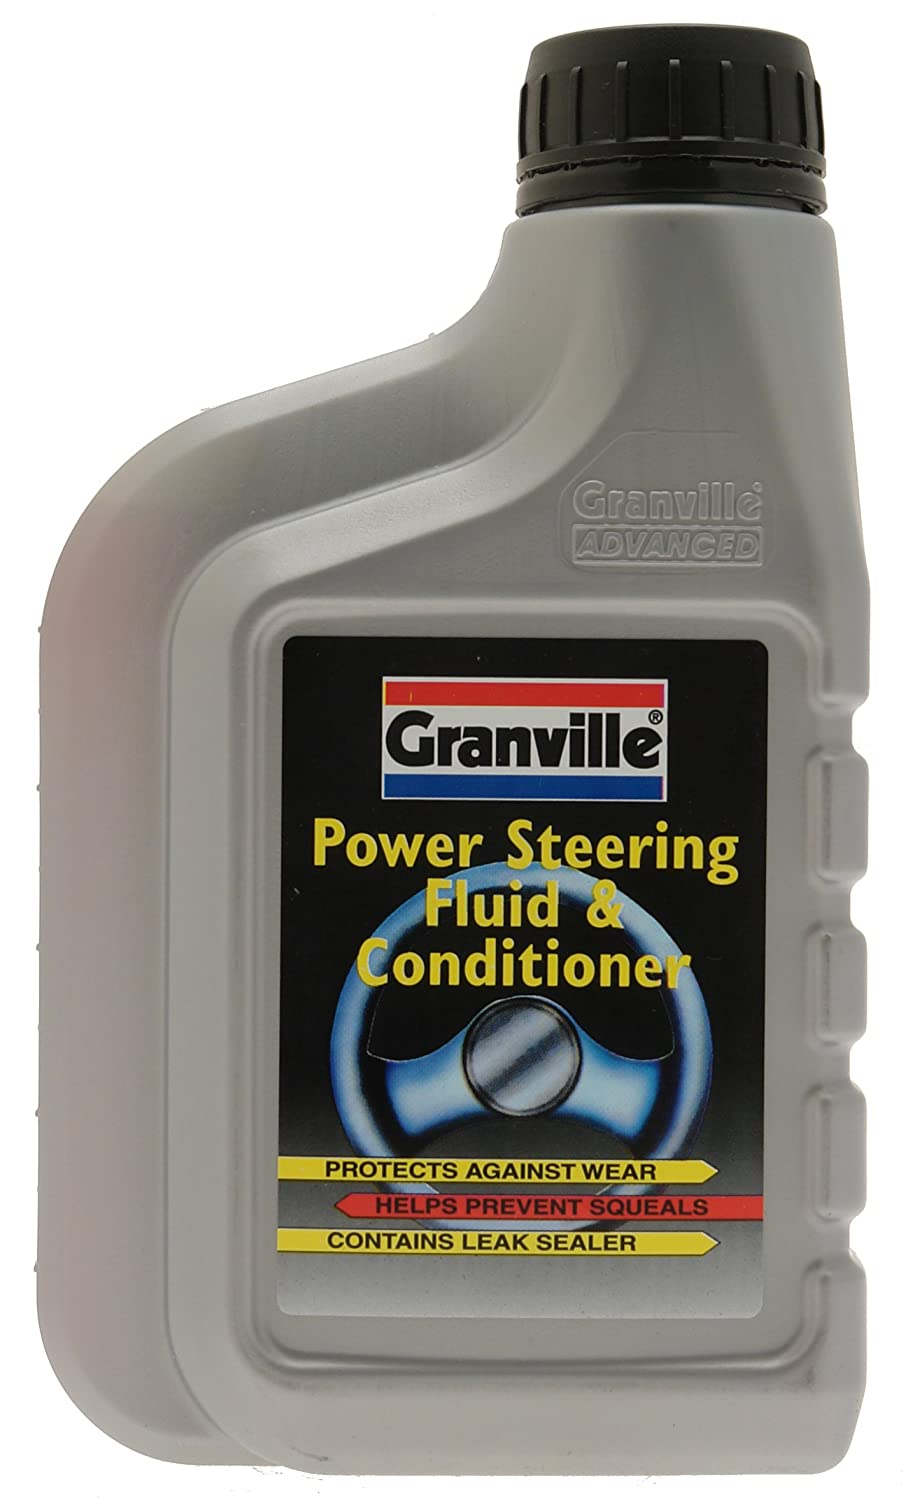 Granville 1813A 500ml Power Steering Fluid and Condition Granville Oil & Chemicals Ltd